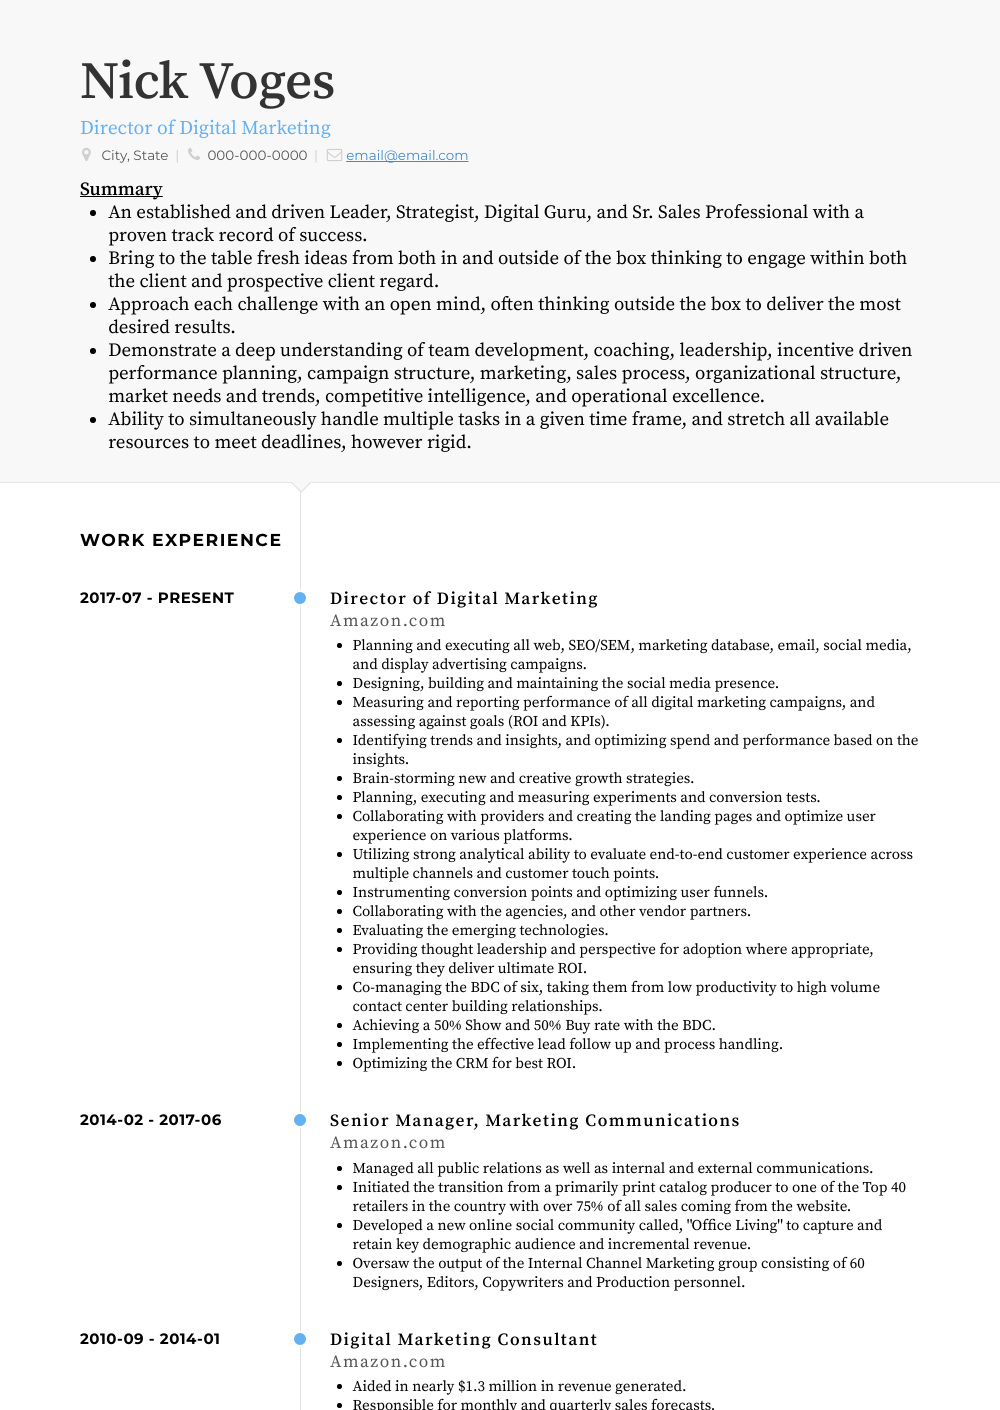 Director of Digital Marketing Resume Sample and Template